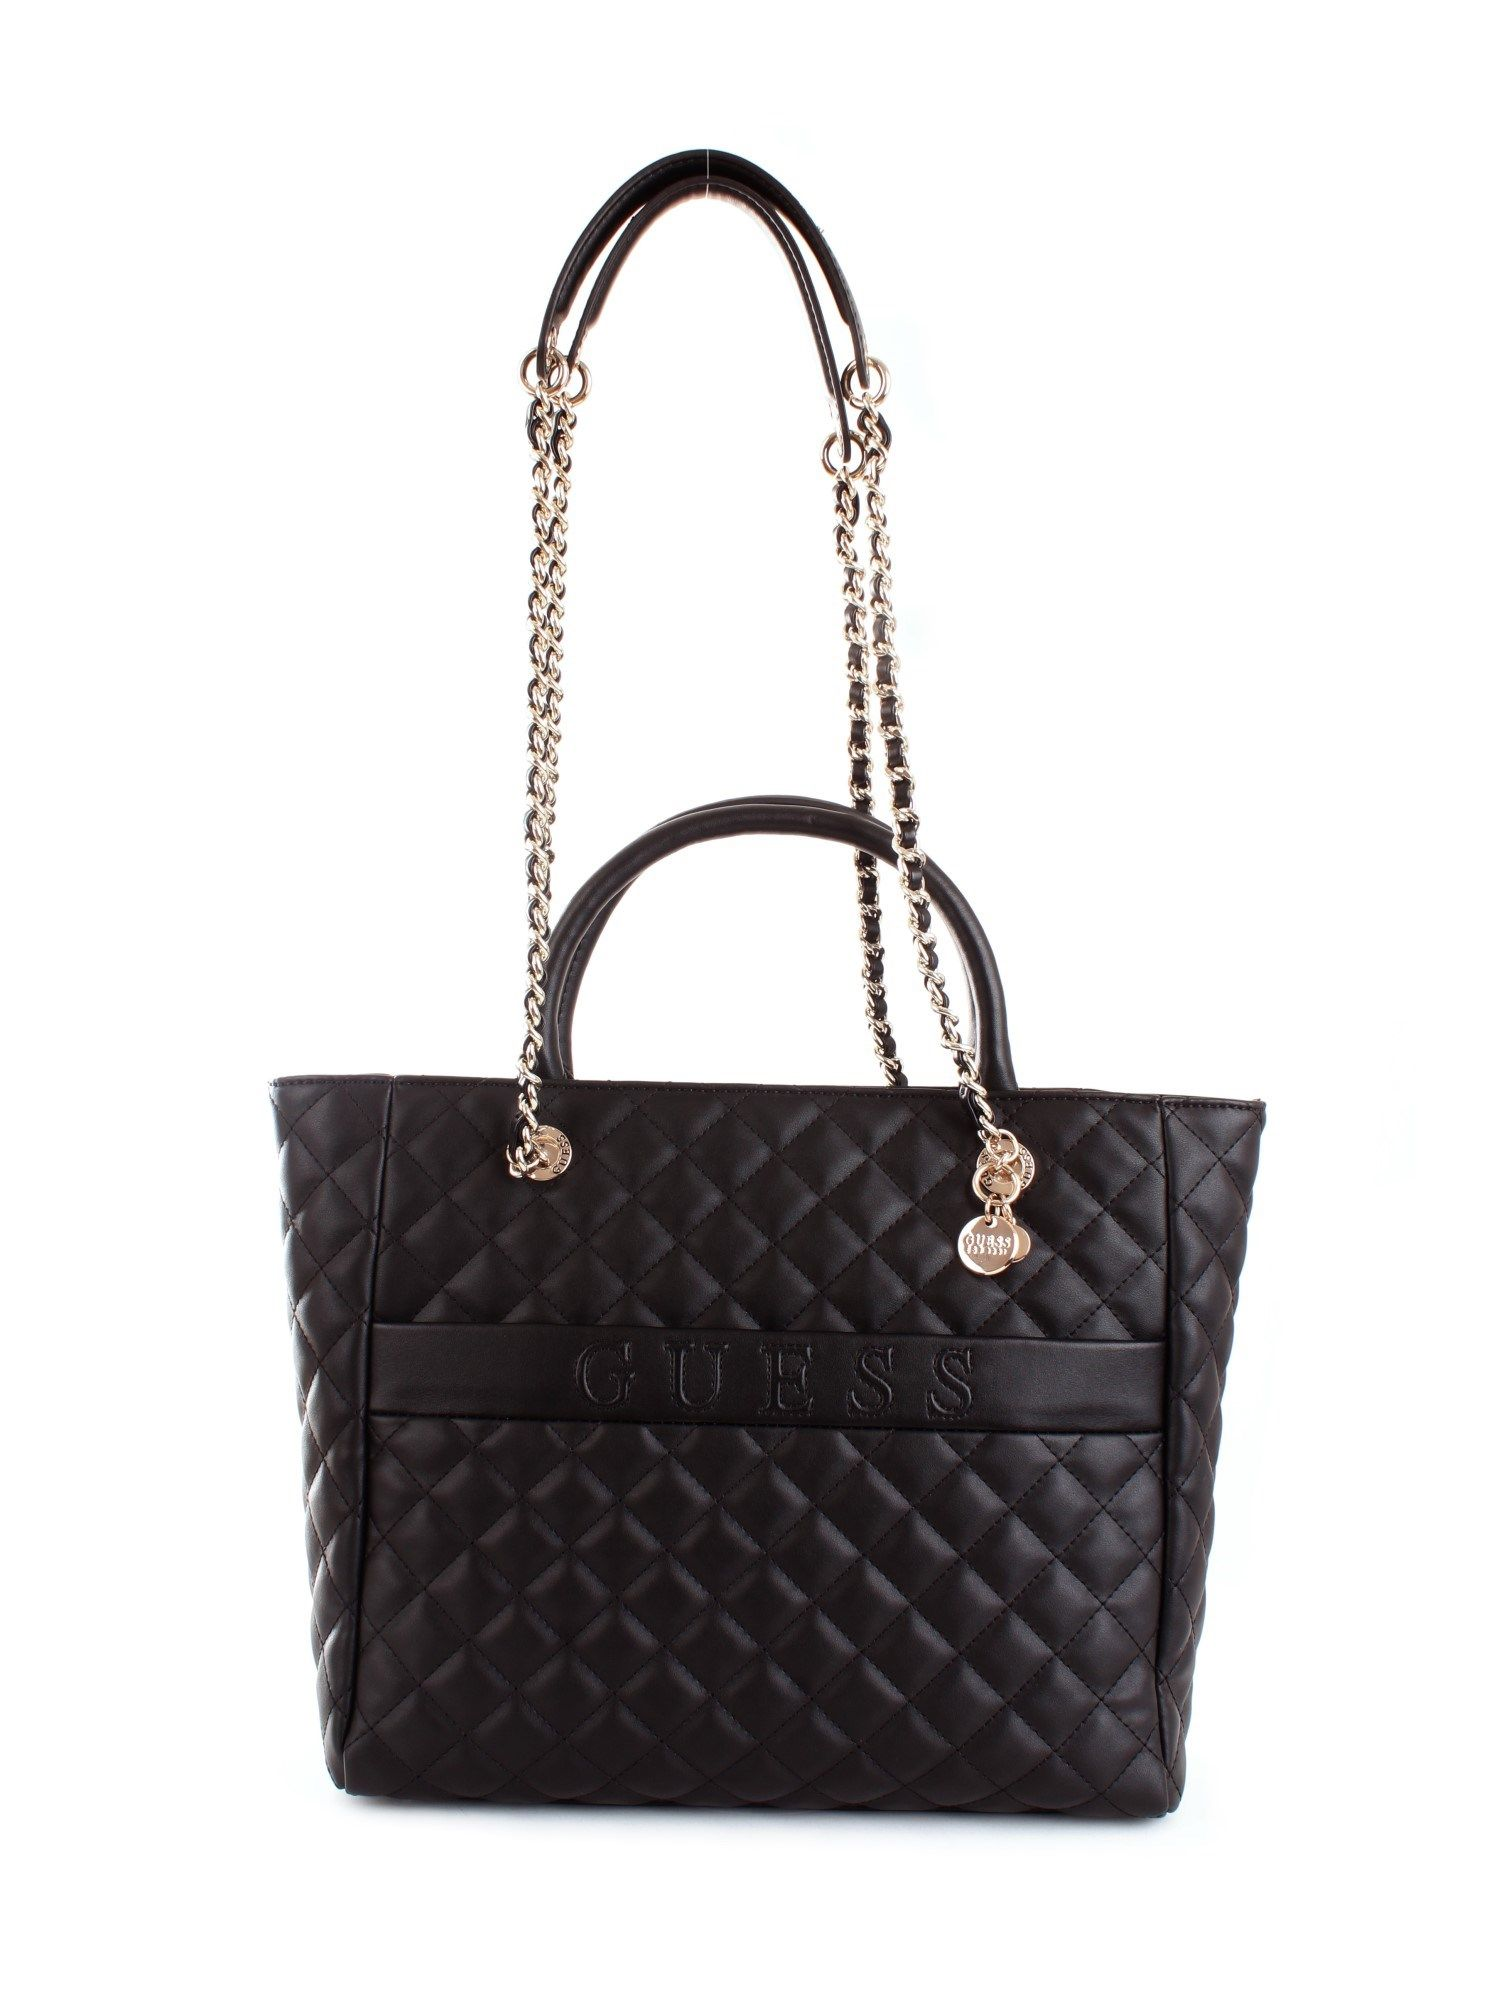 Guess GUESS WOMEN'S HWVG7970230BLACK BLACK SYNTHETIC FIBERS TOTE